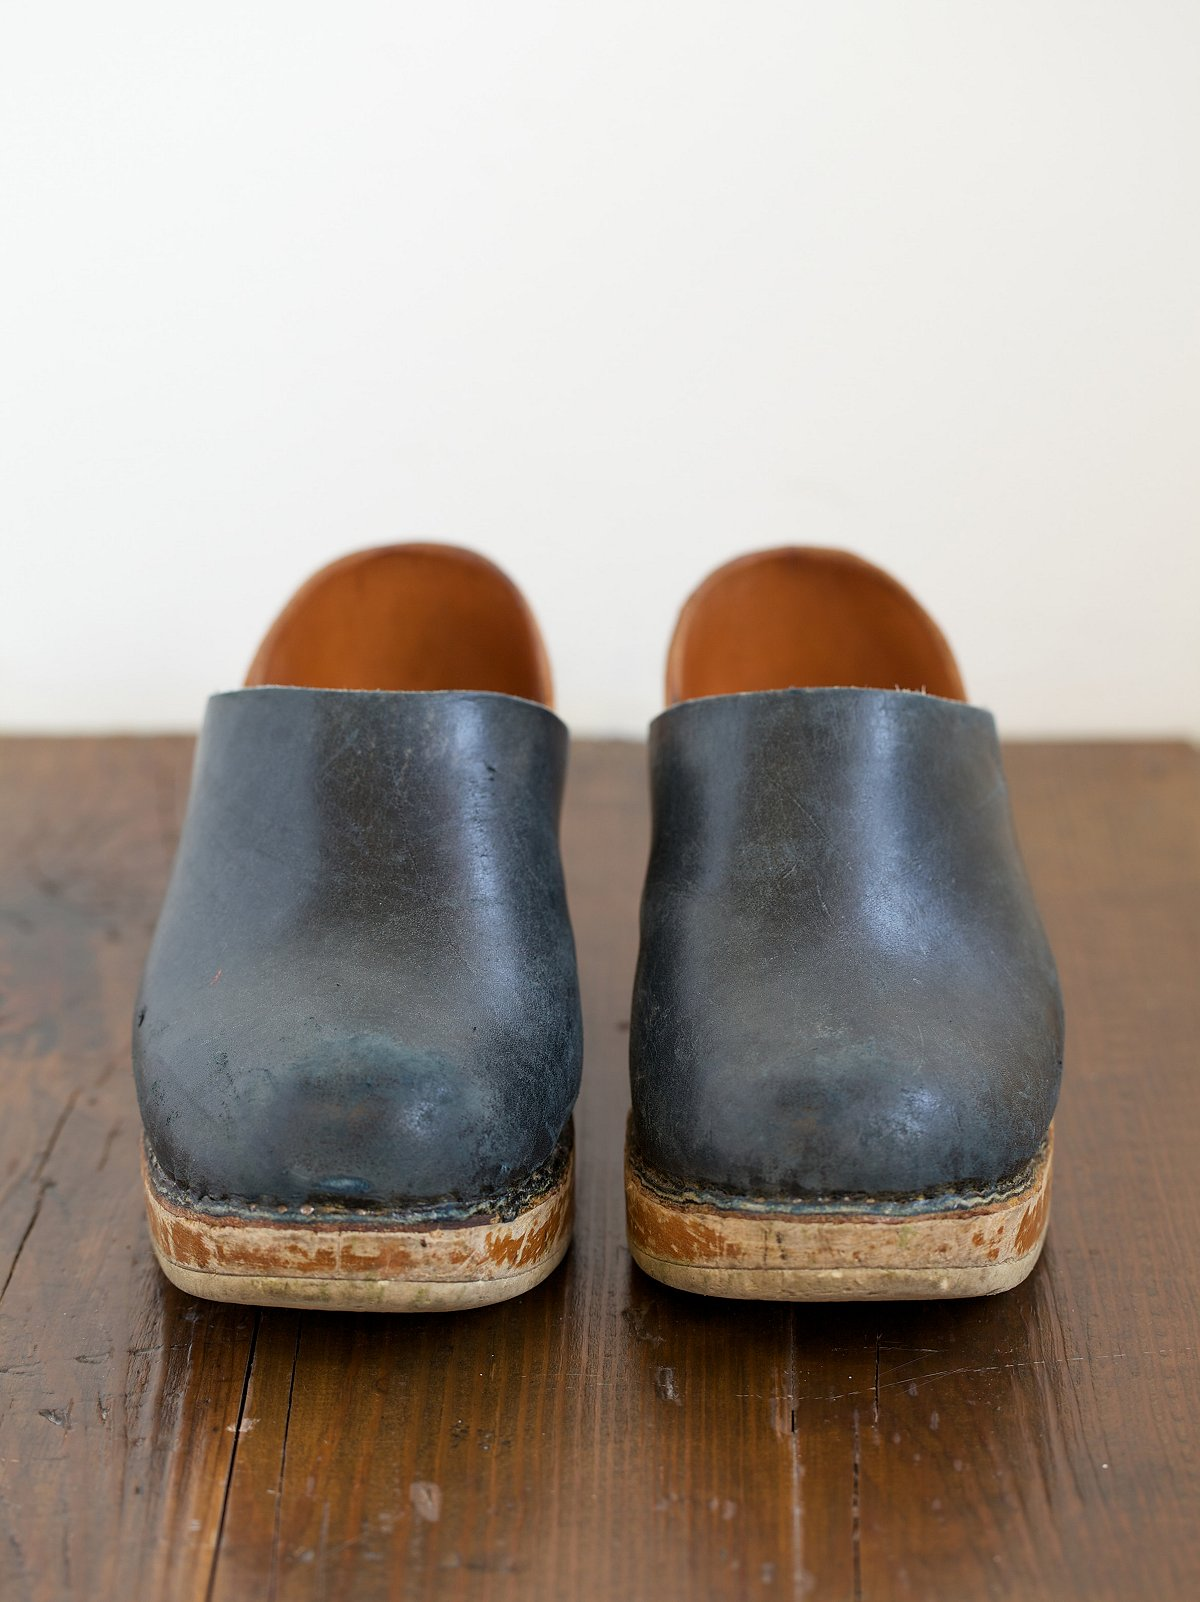 Vintage Black Leather and Wood Clogs